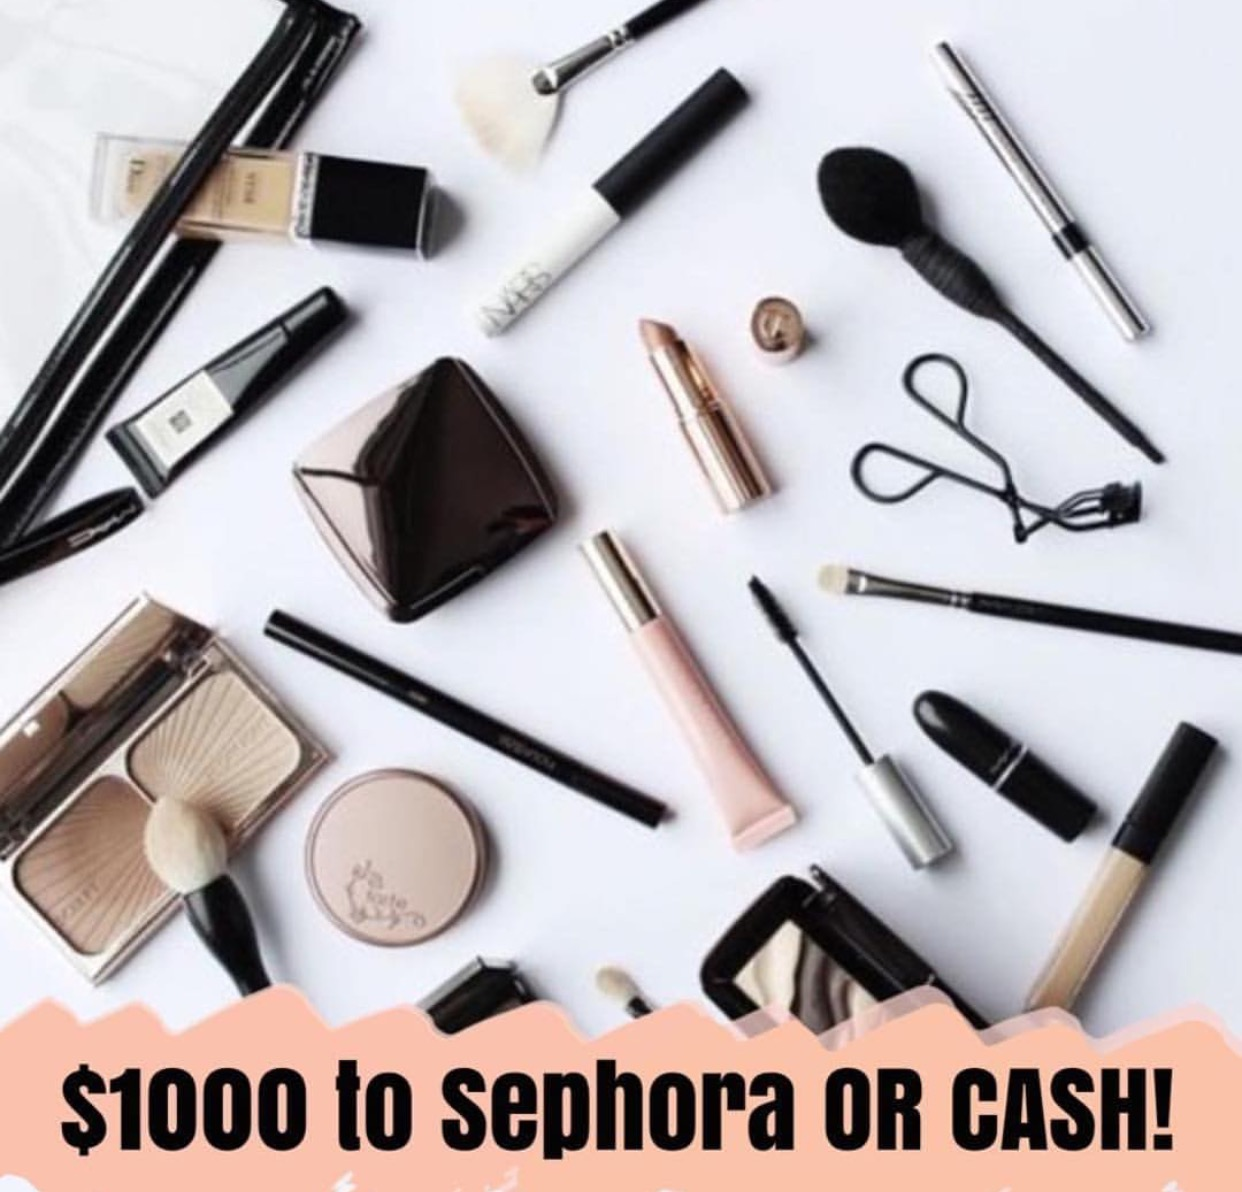 $1000 Sephora OR cash giveaway ends tonight! Click on the photo and follow instructions to win!